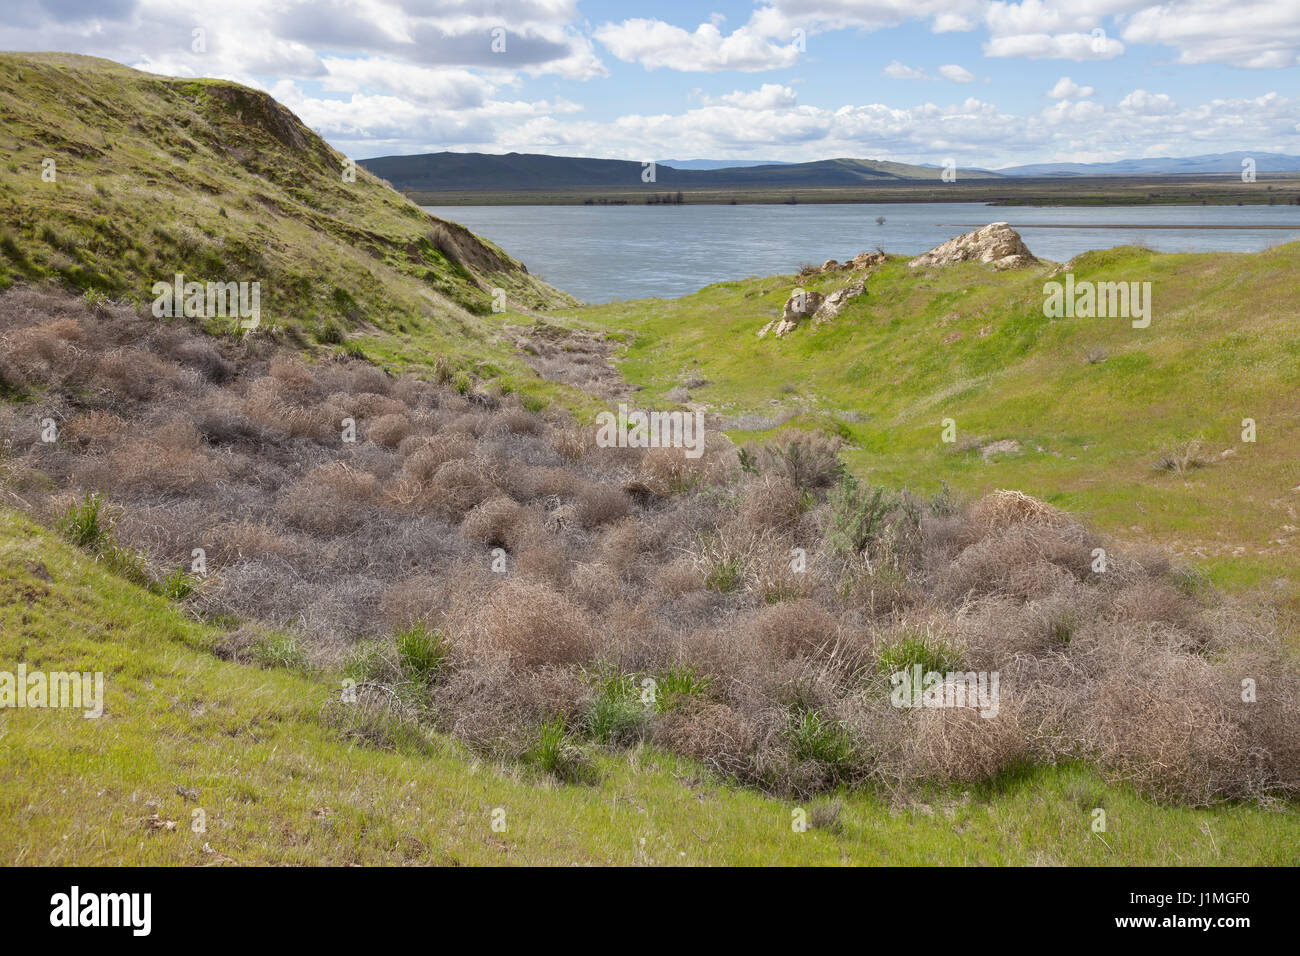 Franklin County, Washington: Tumbleweeds gathered along the Columbia River at the White Bluffs in Hanford Reach - Stock Image